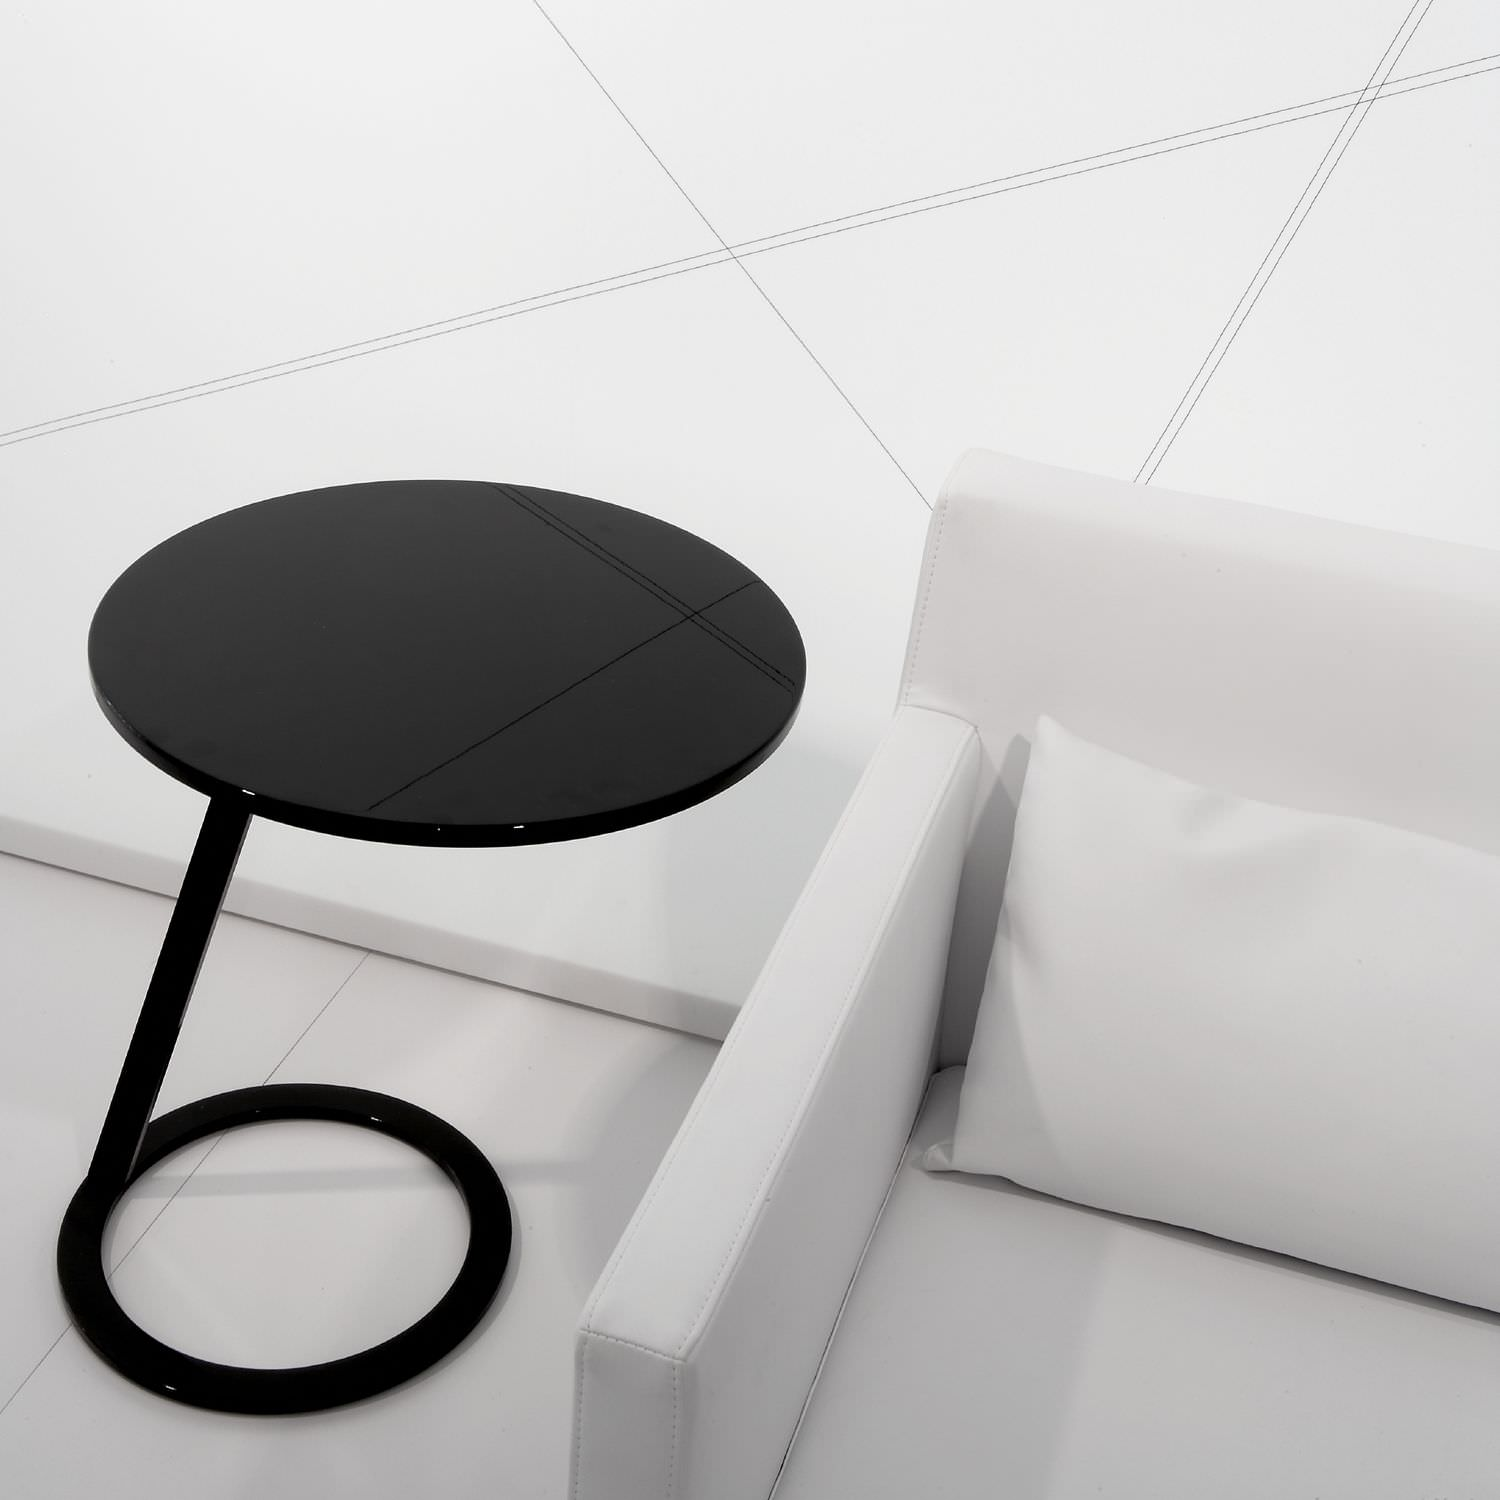 Side table contemporary lacquered aluminum lacquered steel GOOD MORNING by Alban S bastien Gilles